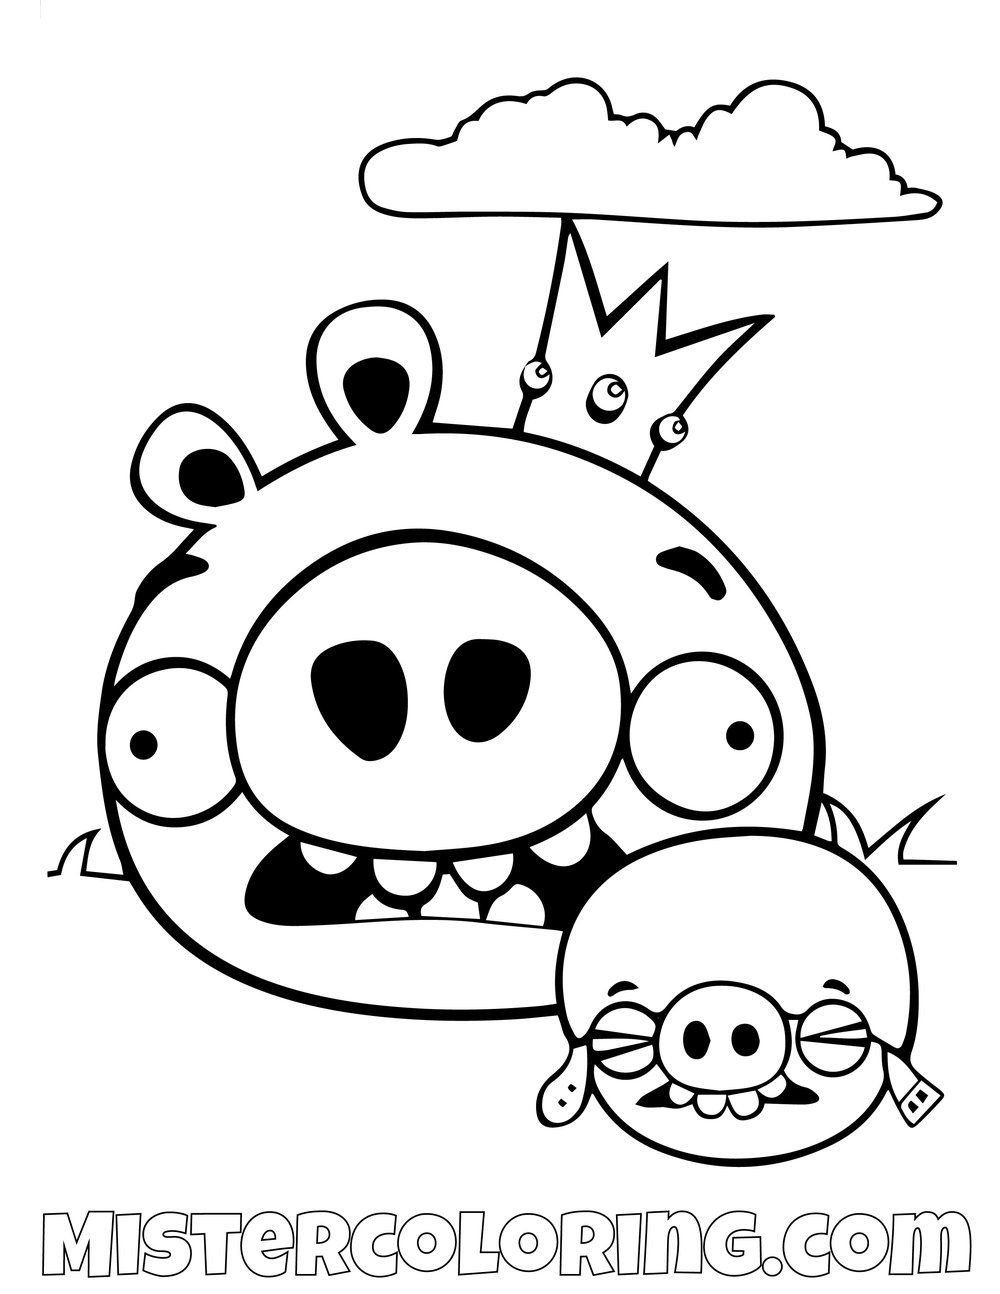 Angry Birds Coloring Book King Pig Angry Birds Coloring Pages With Images In 2020 Bird Coloring Pages Coloring Books Transformers Coloring Pages